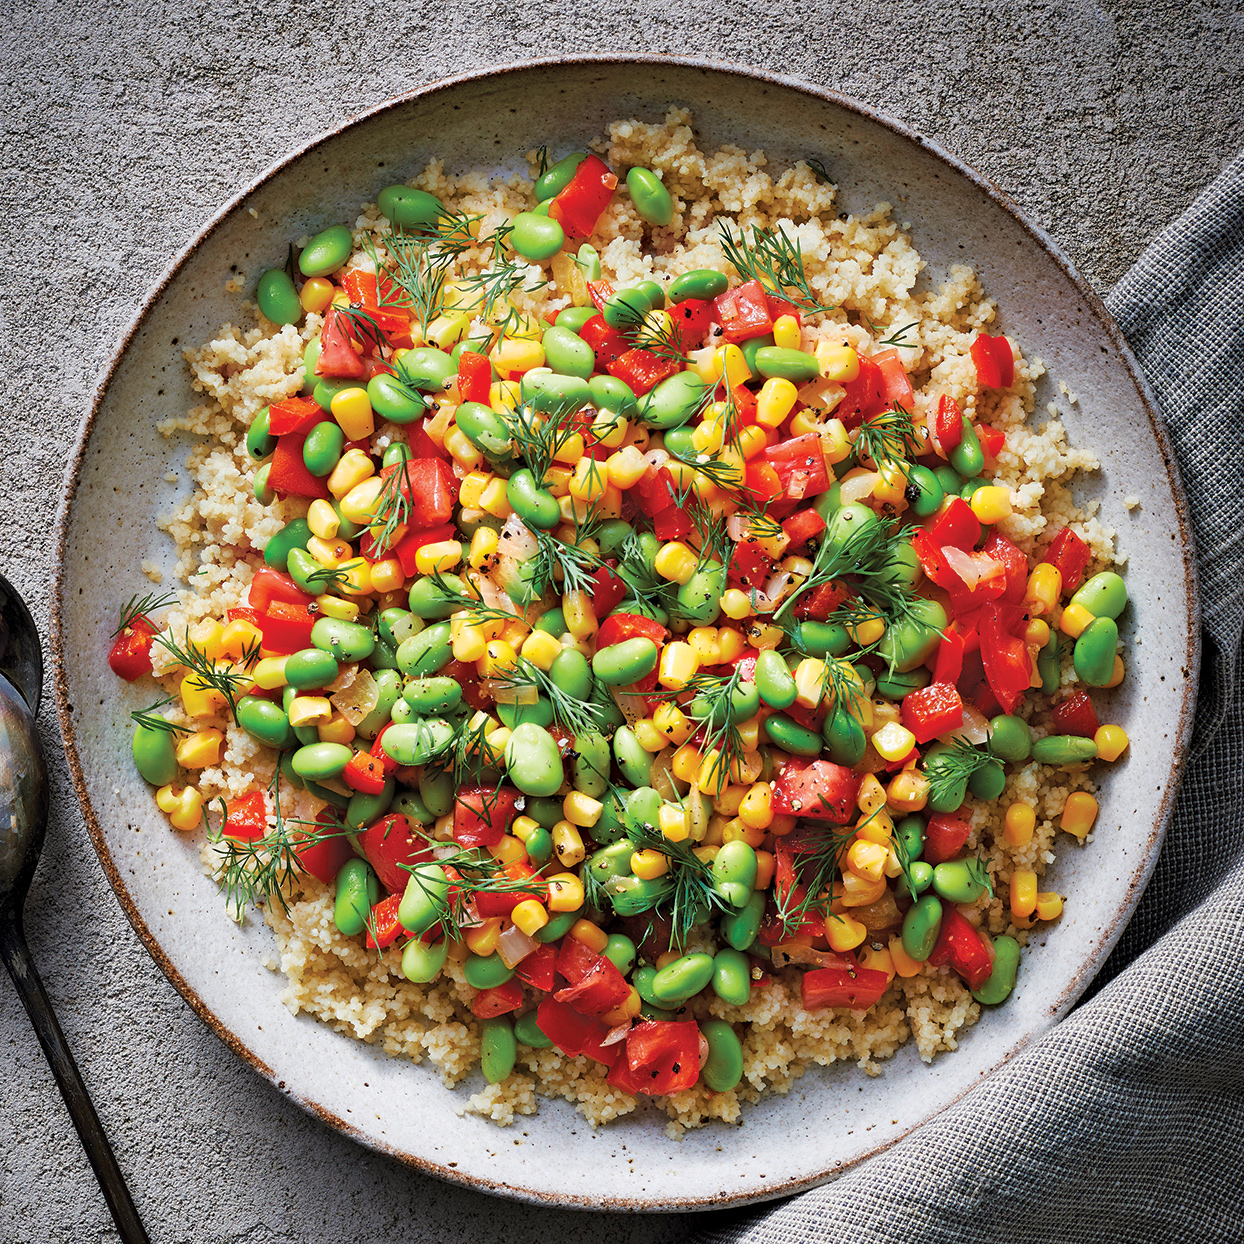 Slow-Cooker Edamame Succotash Trusted Brands